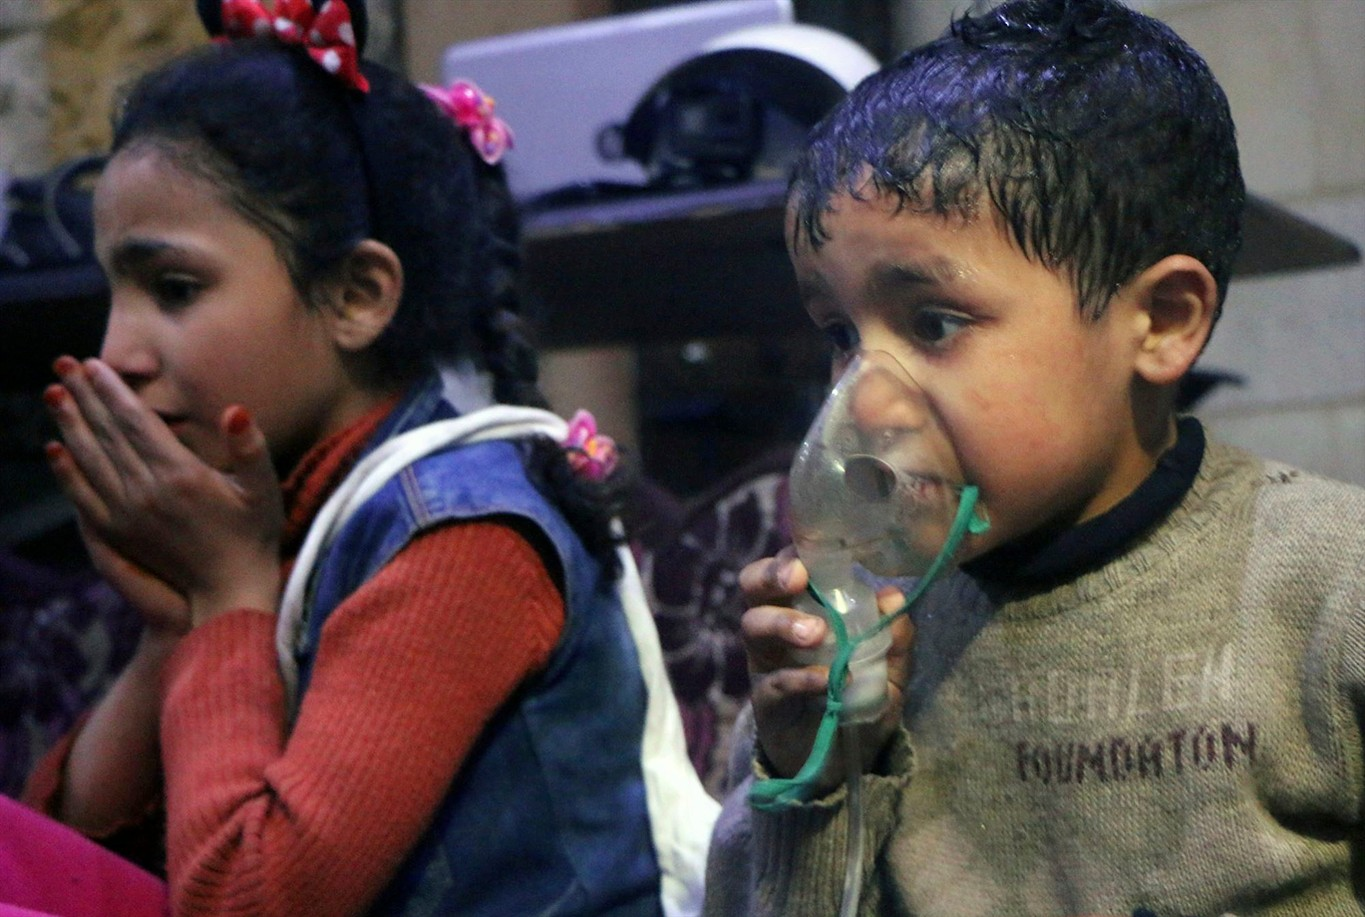 Russia: Chlorine Gas From Germany Found in Syria's Ghouta